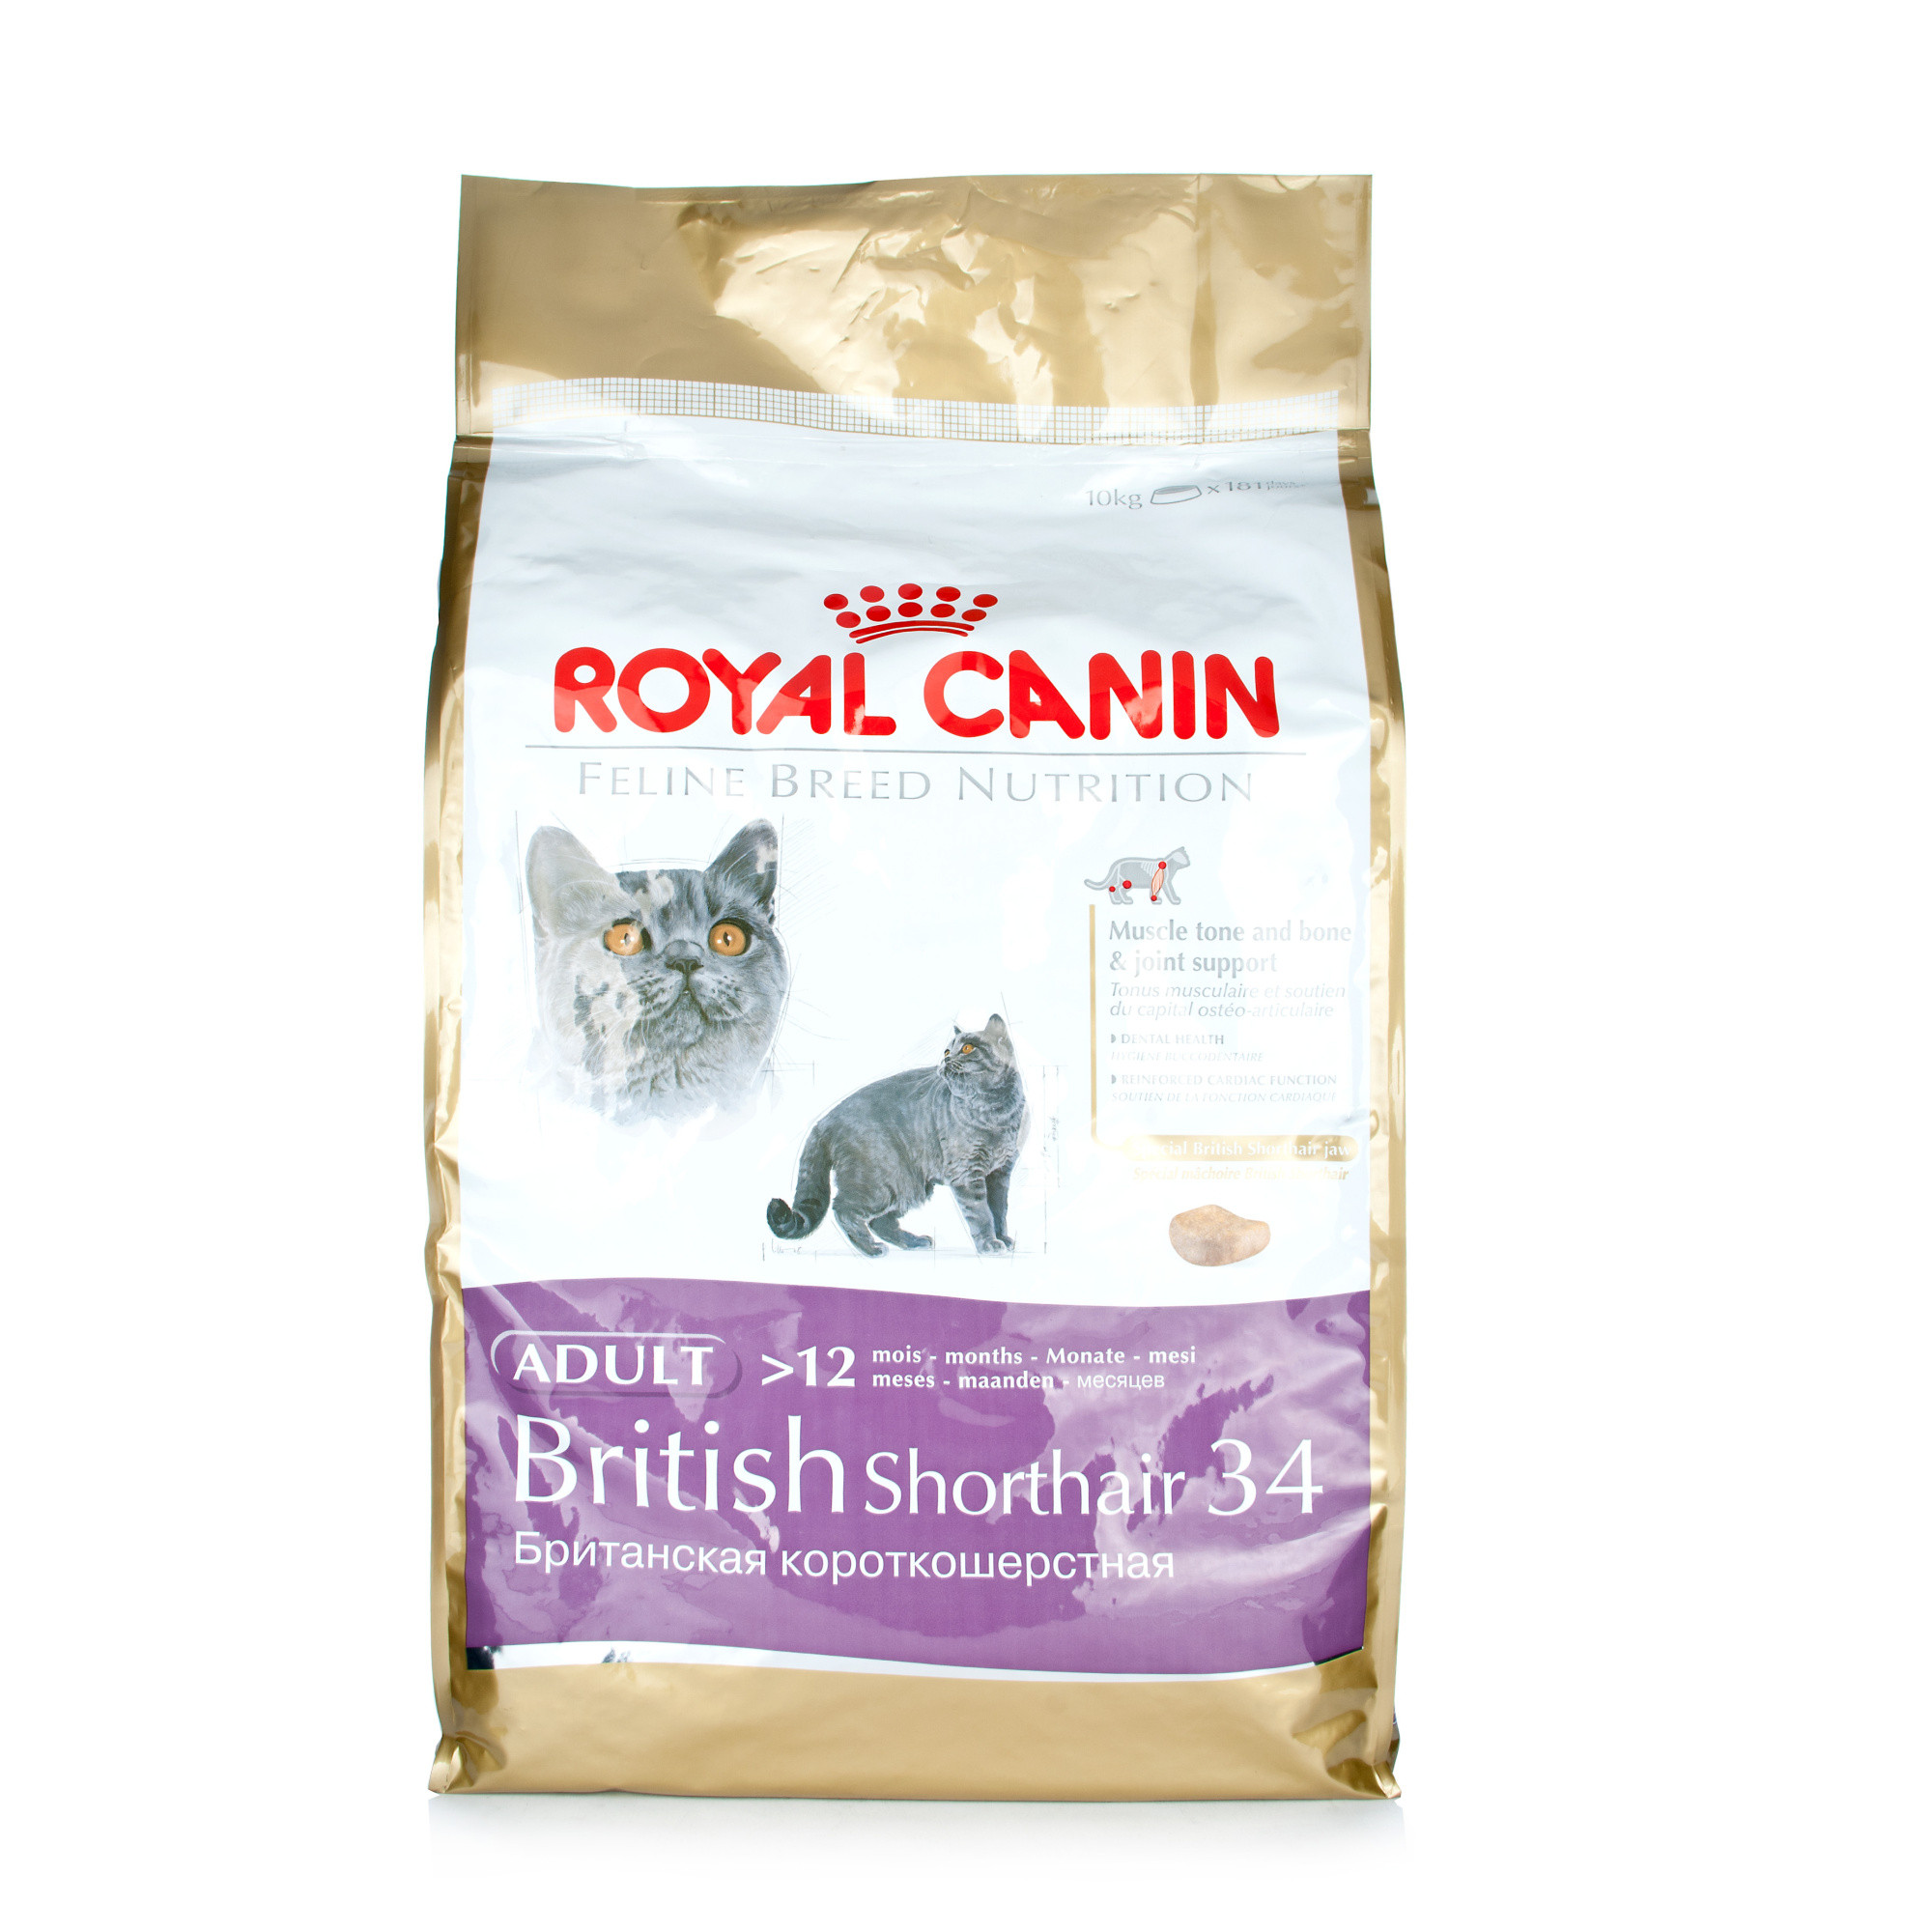 royal canin british short hair 34 10kg cat food. Black Bedroom Furniture Sets. Home Design Ideas